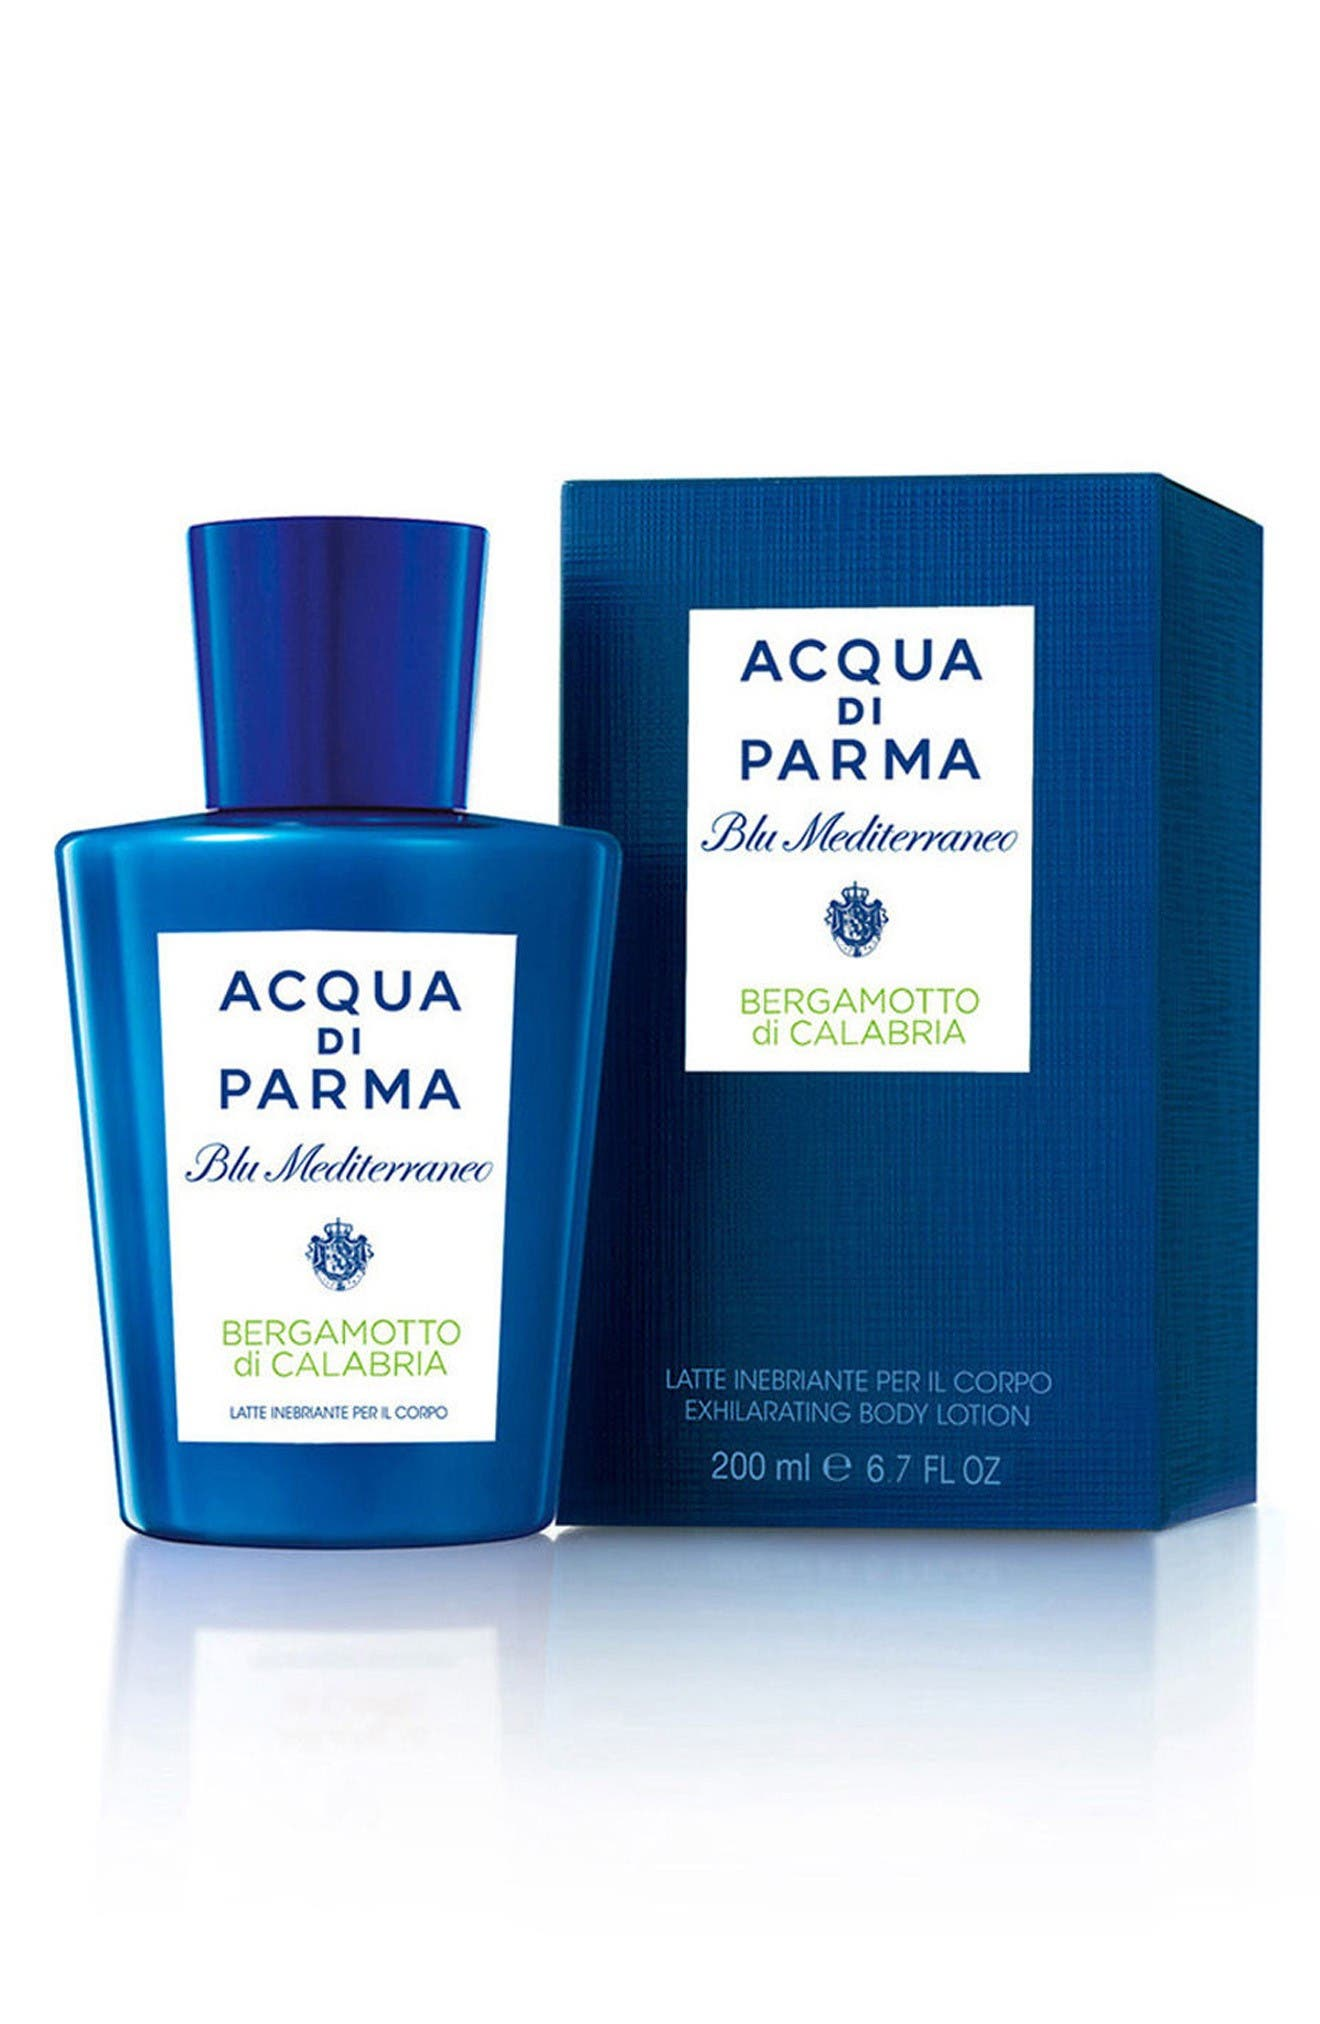 Alternate Image 2  - Acqua di Parma 'Blu Mediterraneo' Bergamotto di Calabria Body Lotion